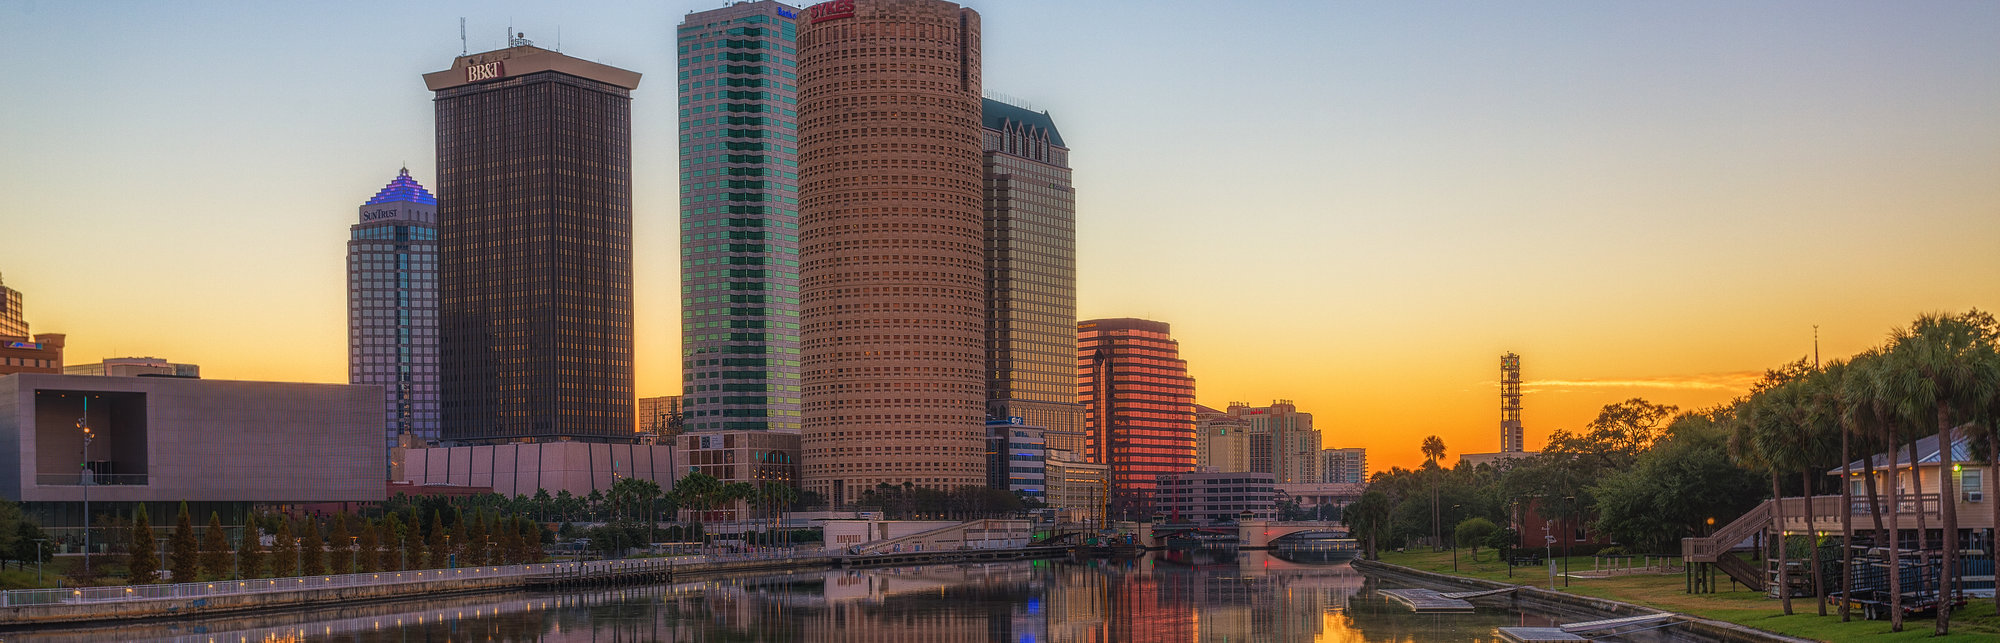 Mirror Image of Tampa Skyline at Sunrise